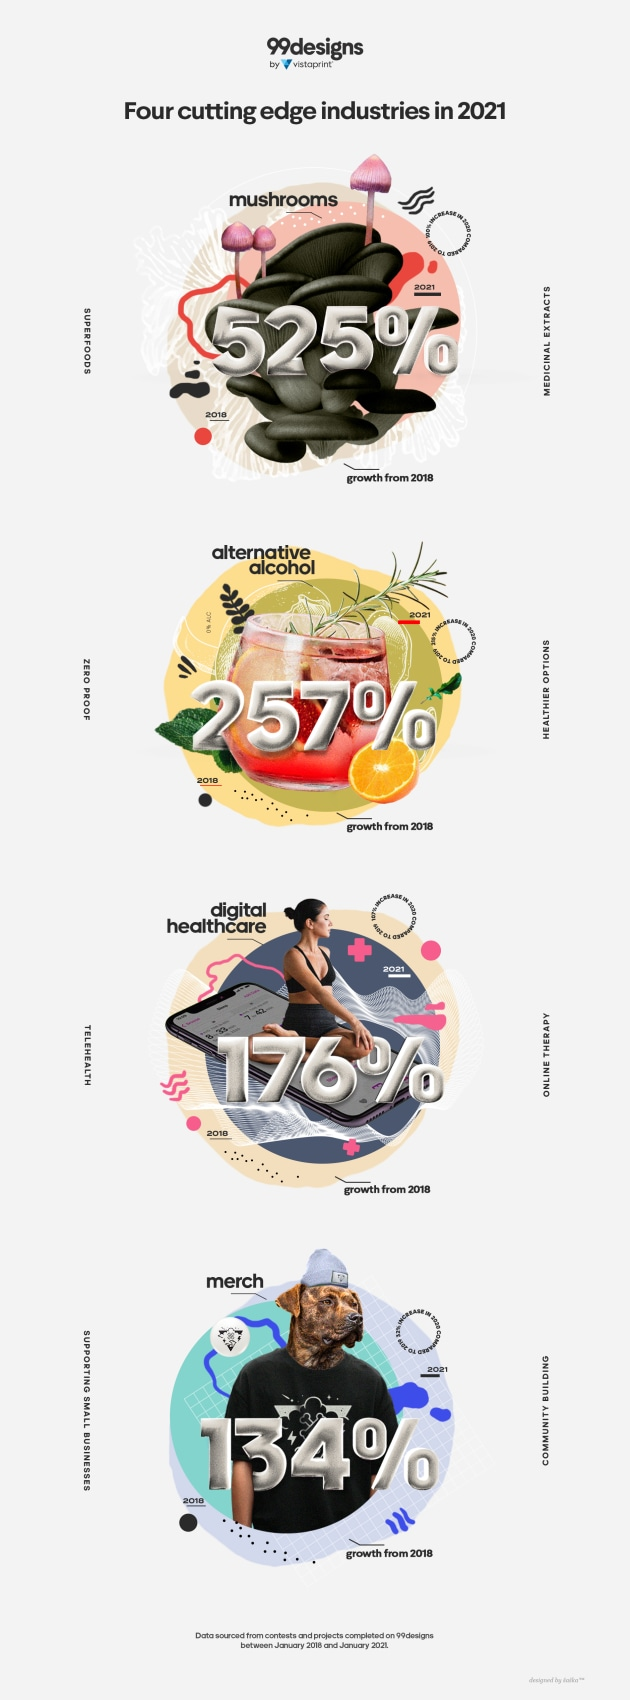 Mushrooms, alternative alcohol, digital health and merch are four of the fastest-growing sectors for start-ups and small businesses in 2021, according to global creative platform 99designs by Vistaprint.